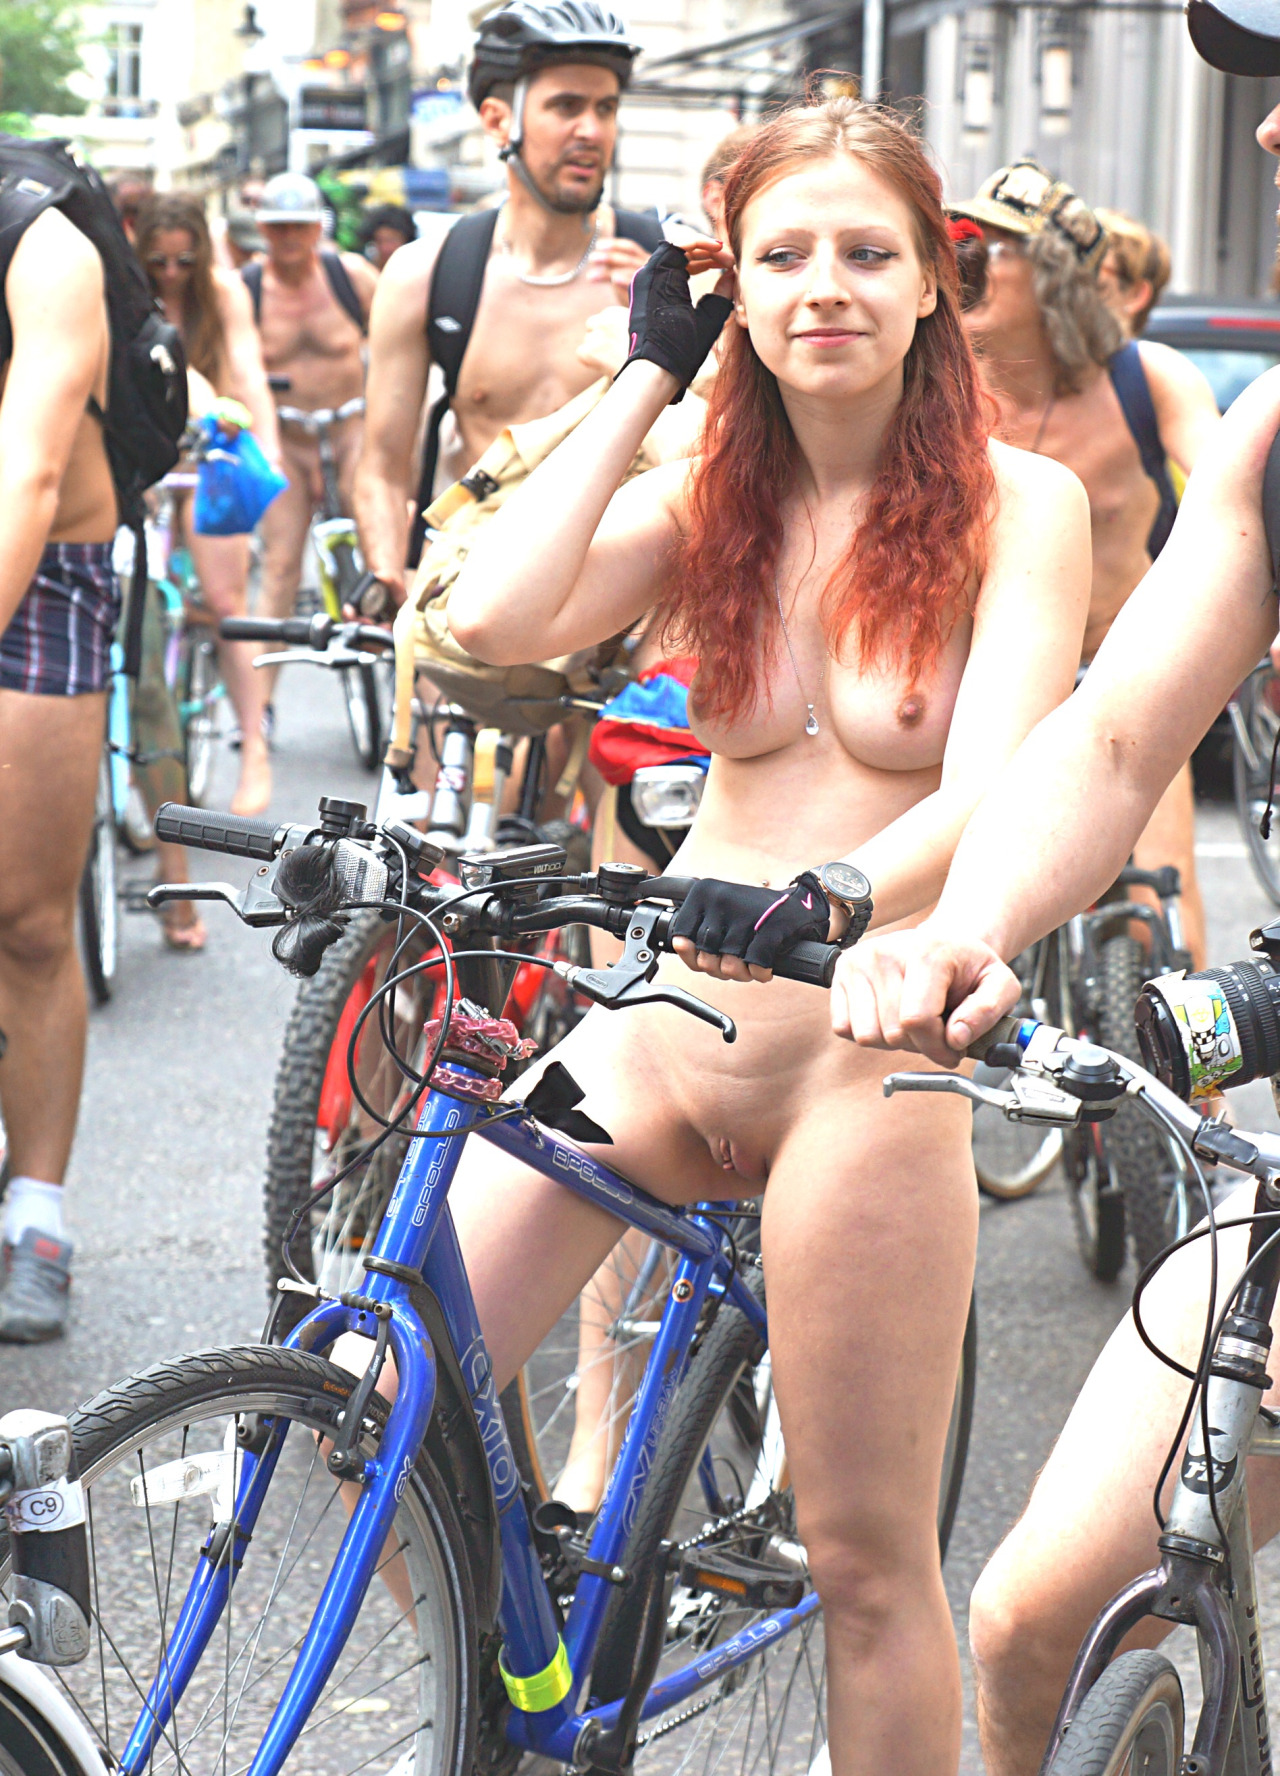 lisa kudrow getting fucked in fake pics pichunter Bicycle, Bike, Completelynaked, Cyclerotica, Iuploadedthispicwithmydick, Pale, Redhead